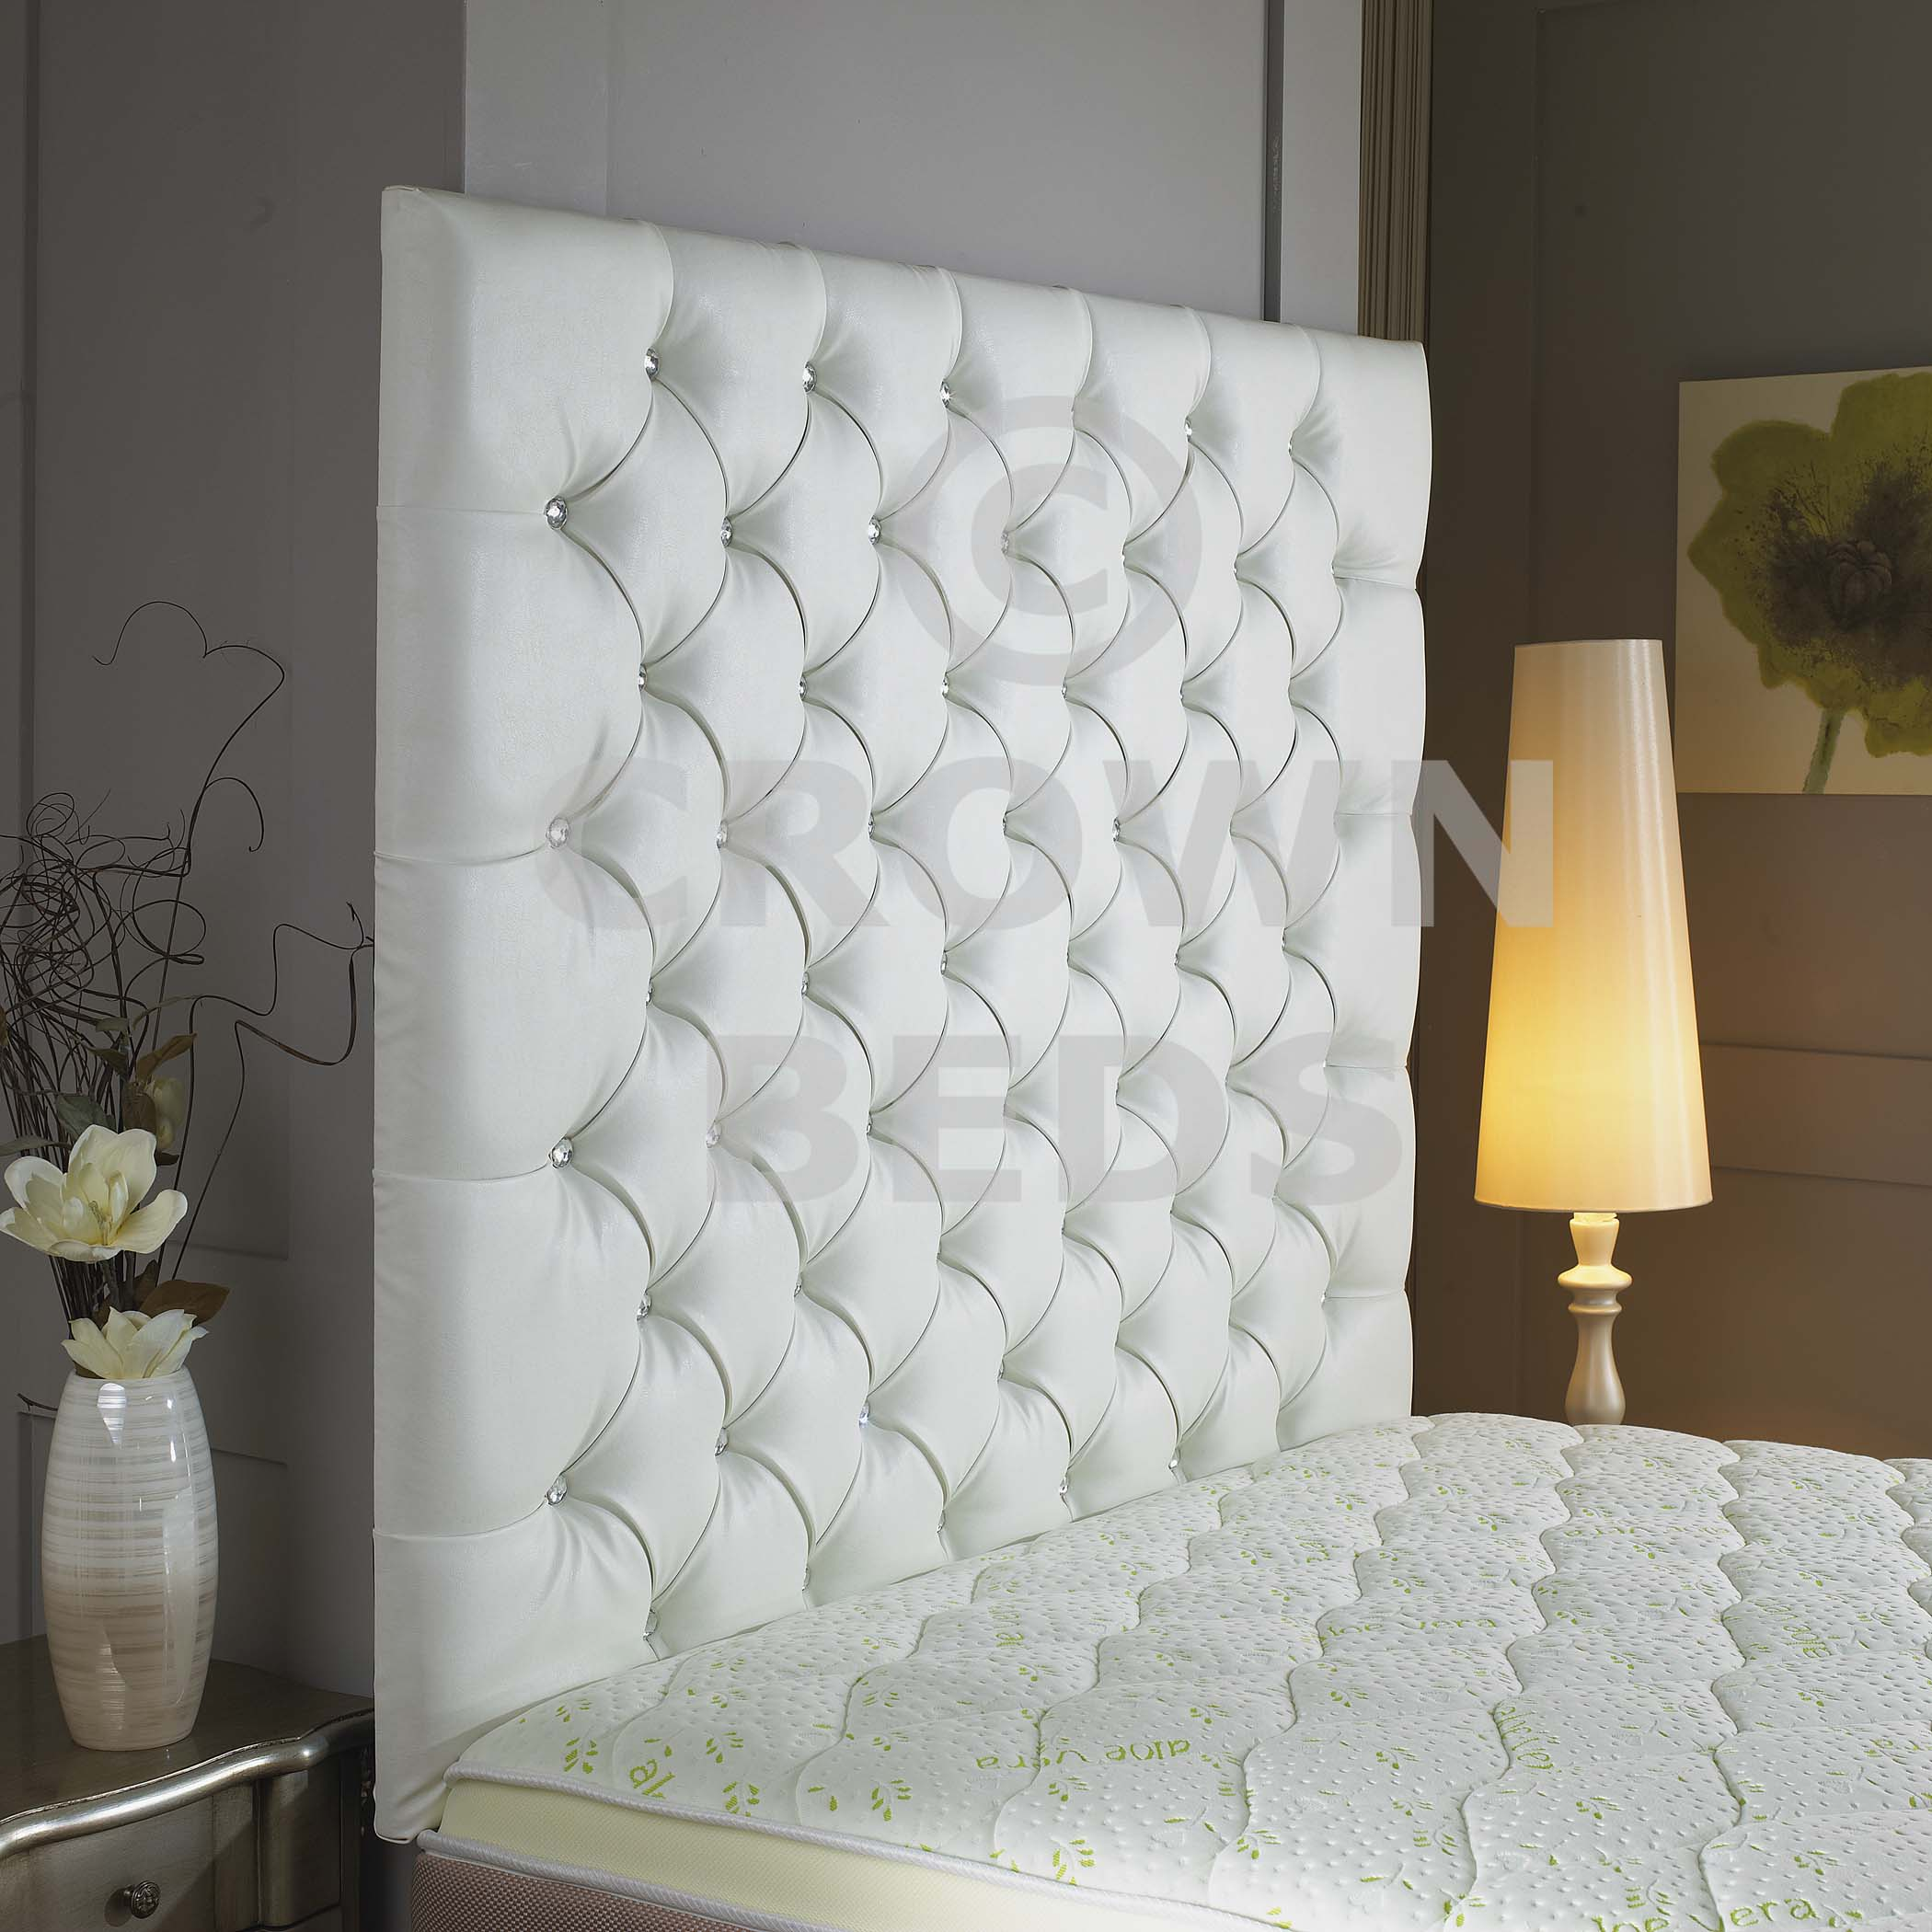 room bed diamond craft and gym headboard white ideas tufted craftsmanbb black design